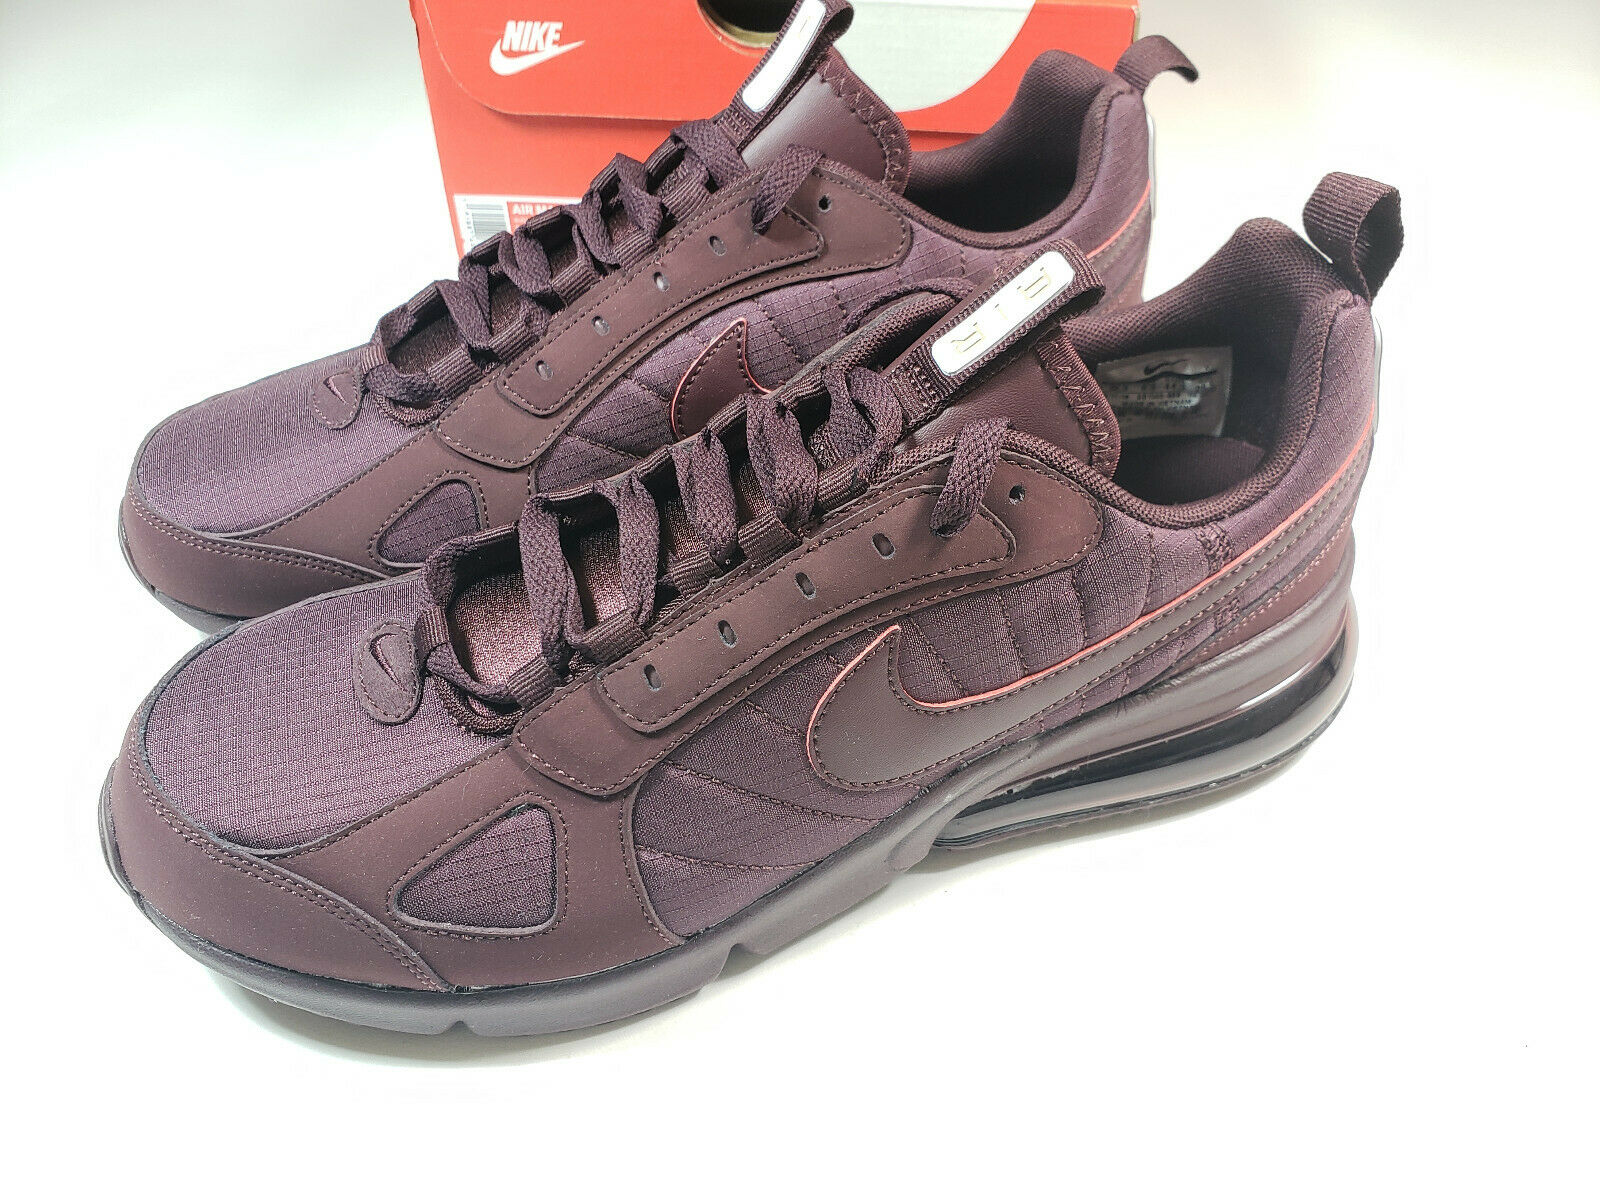 Nike Air Max 270 Futura Burgundy Running shoes Big Bubble AO1569-600 Sz 10.5 Men